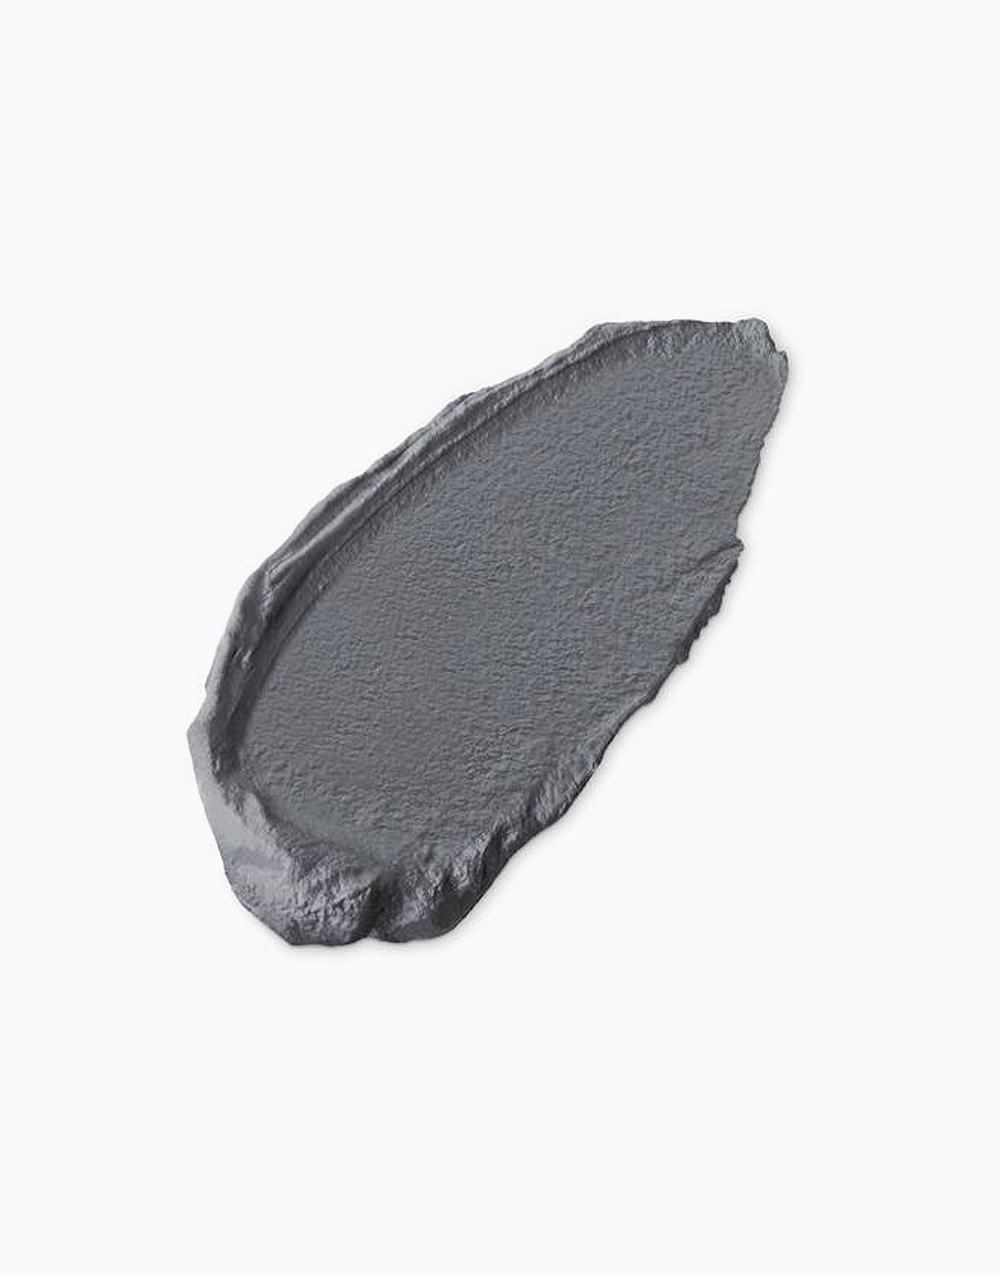 Glow Mud Mask by Pixi by Petra